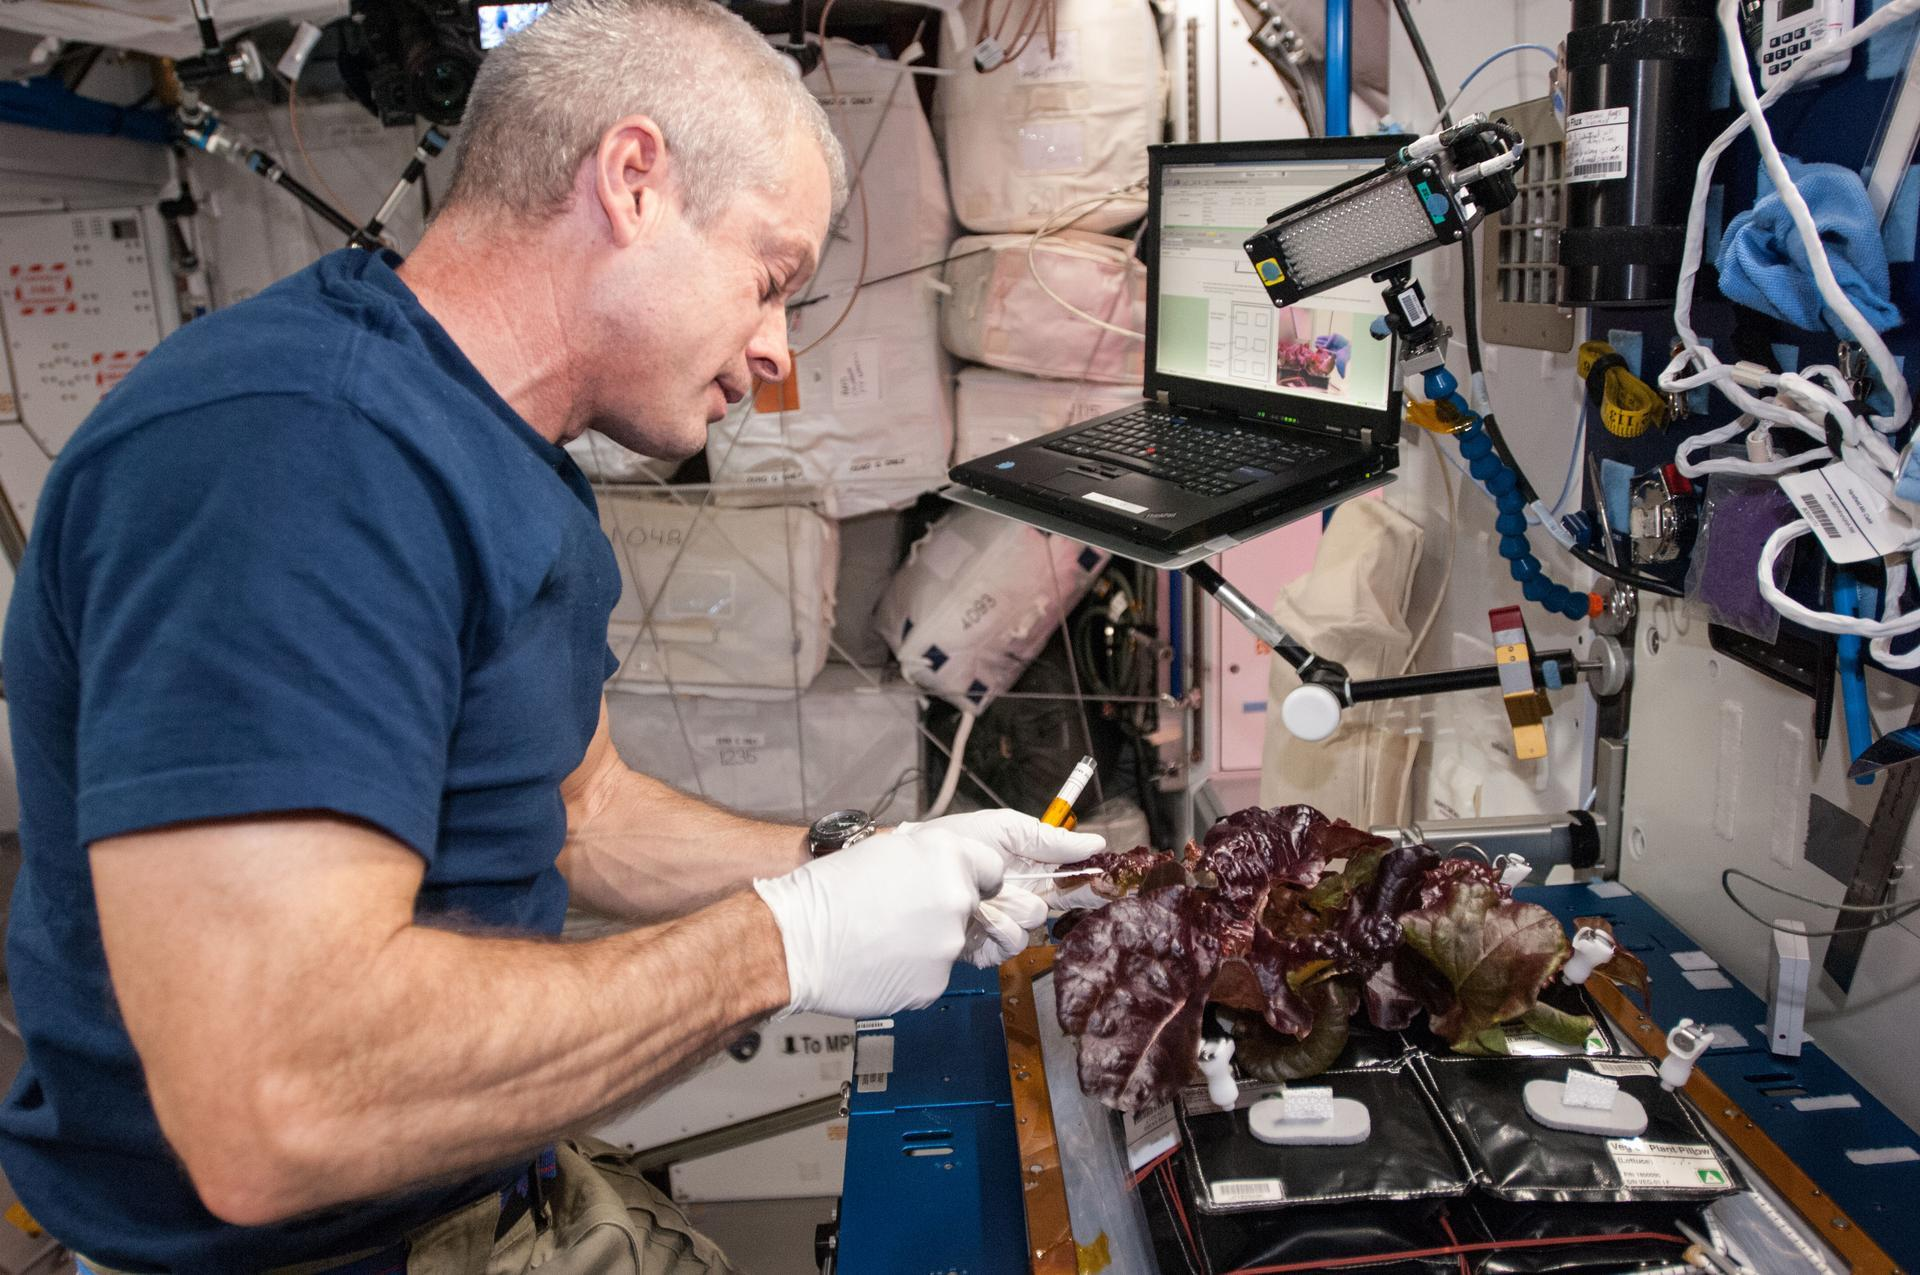 iss lettuce working space station